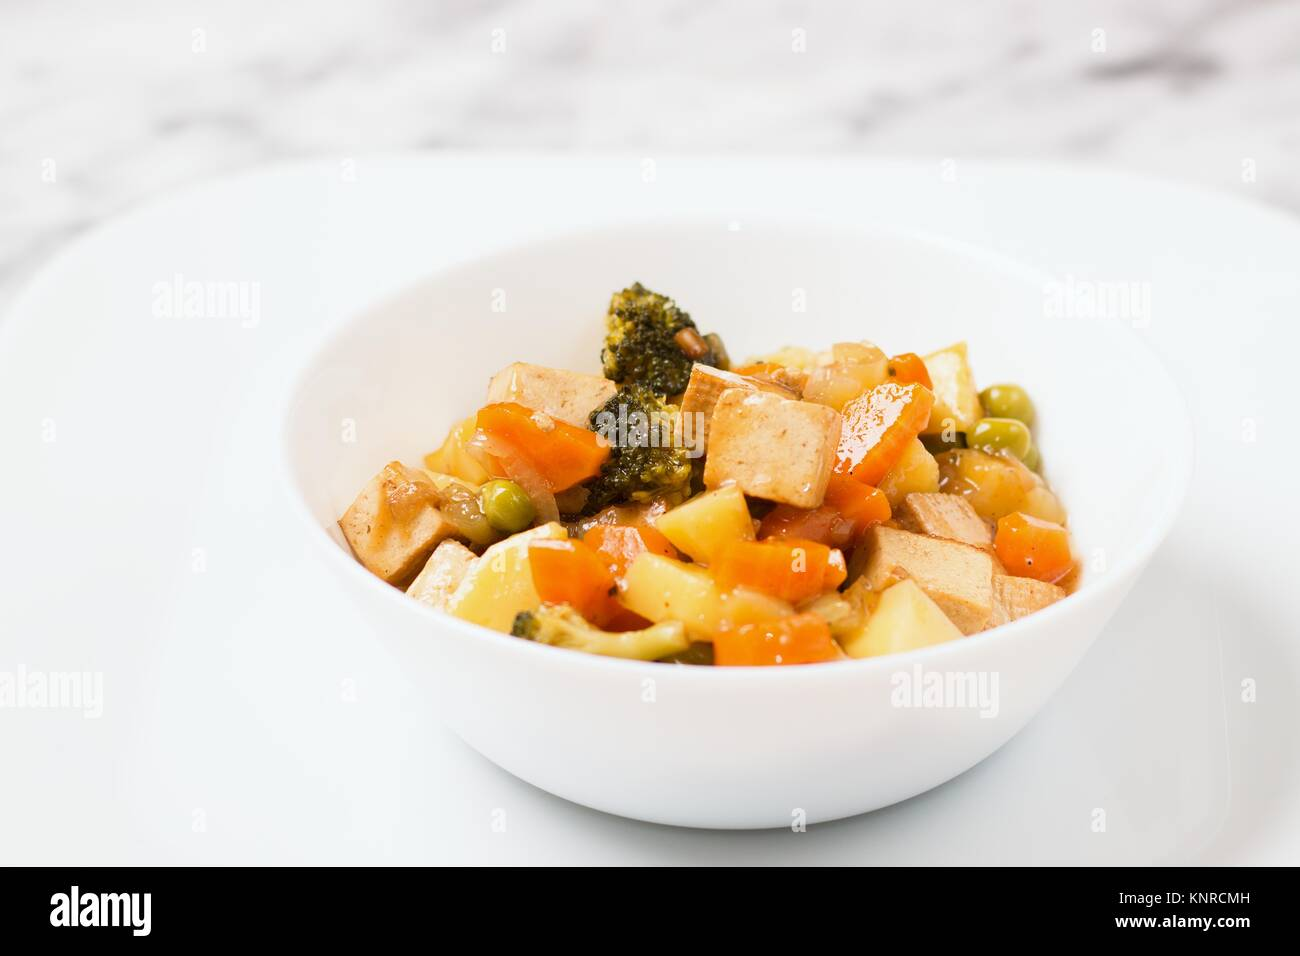 White bowl of asian style vegan meal of smoked tofu and cooked vegetables - Stock Image